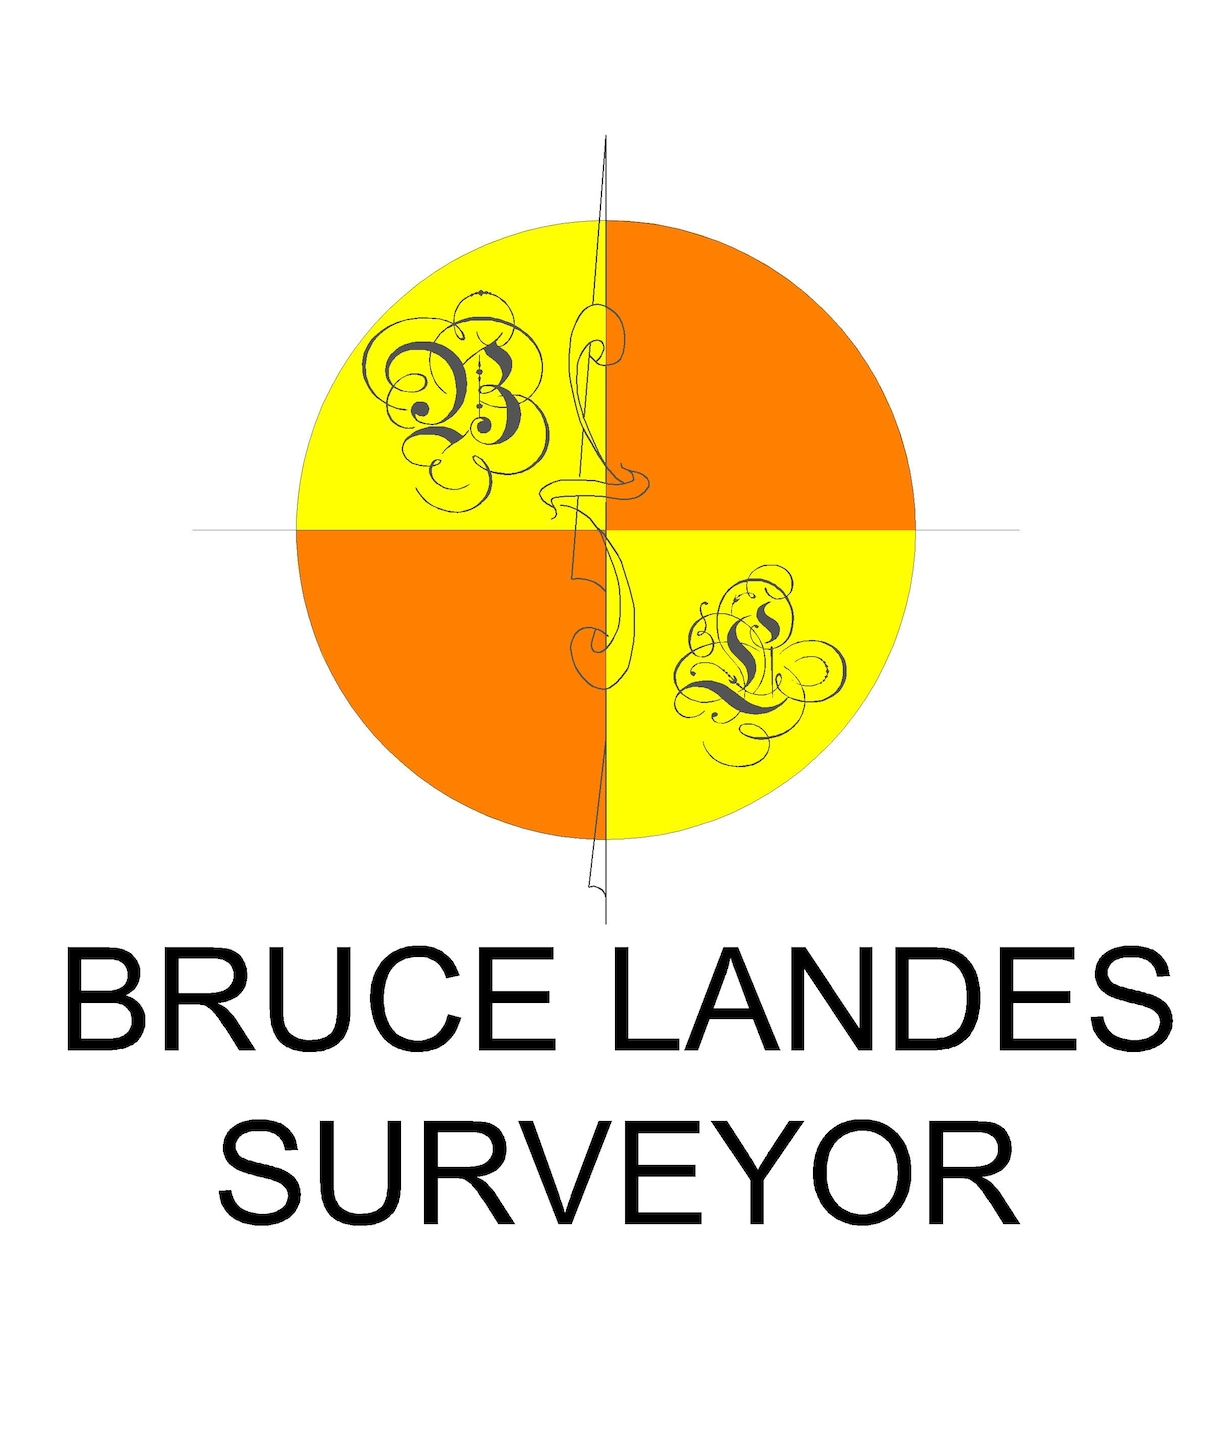 Bruce Landes Surveyor